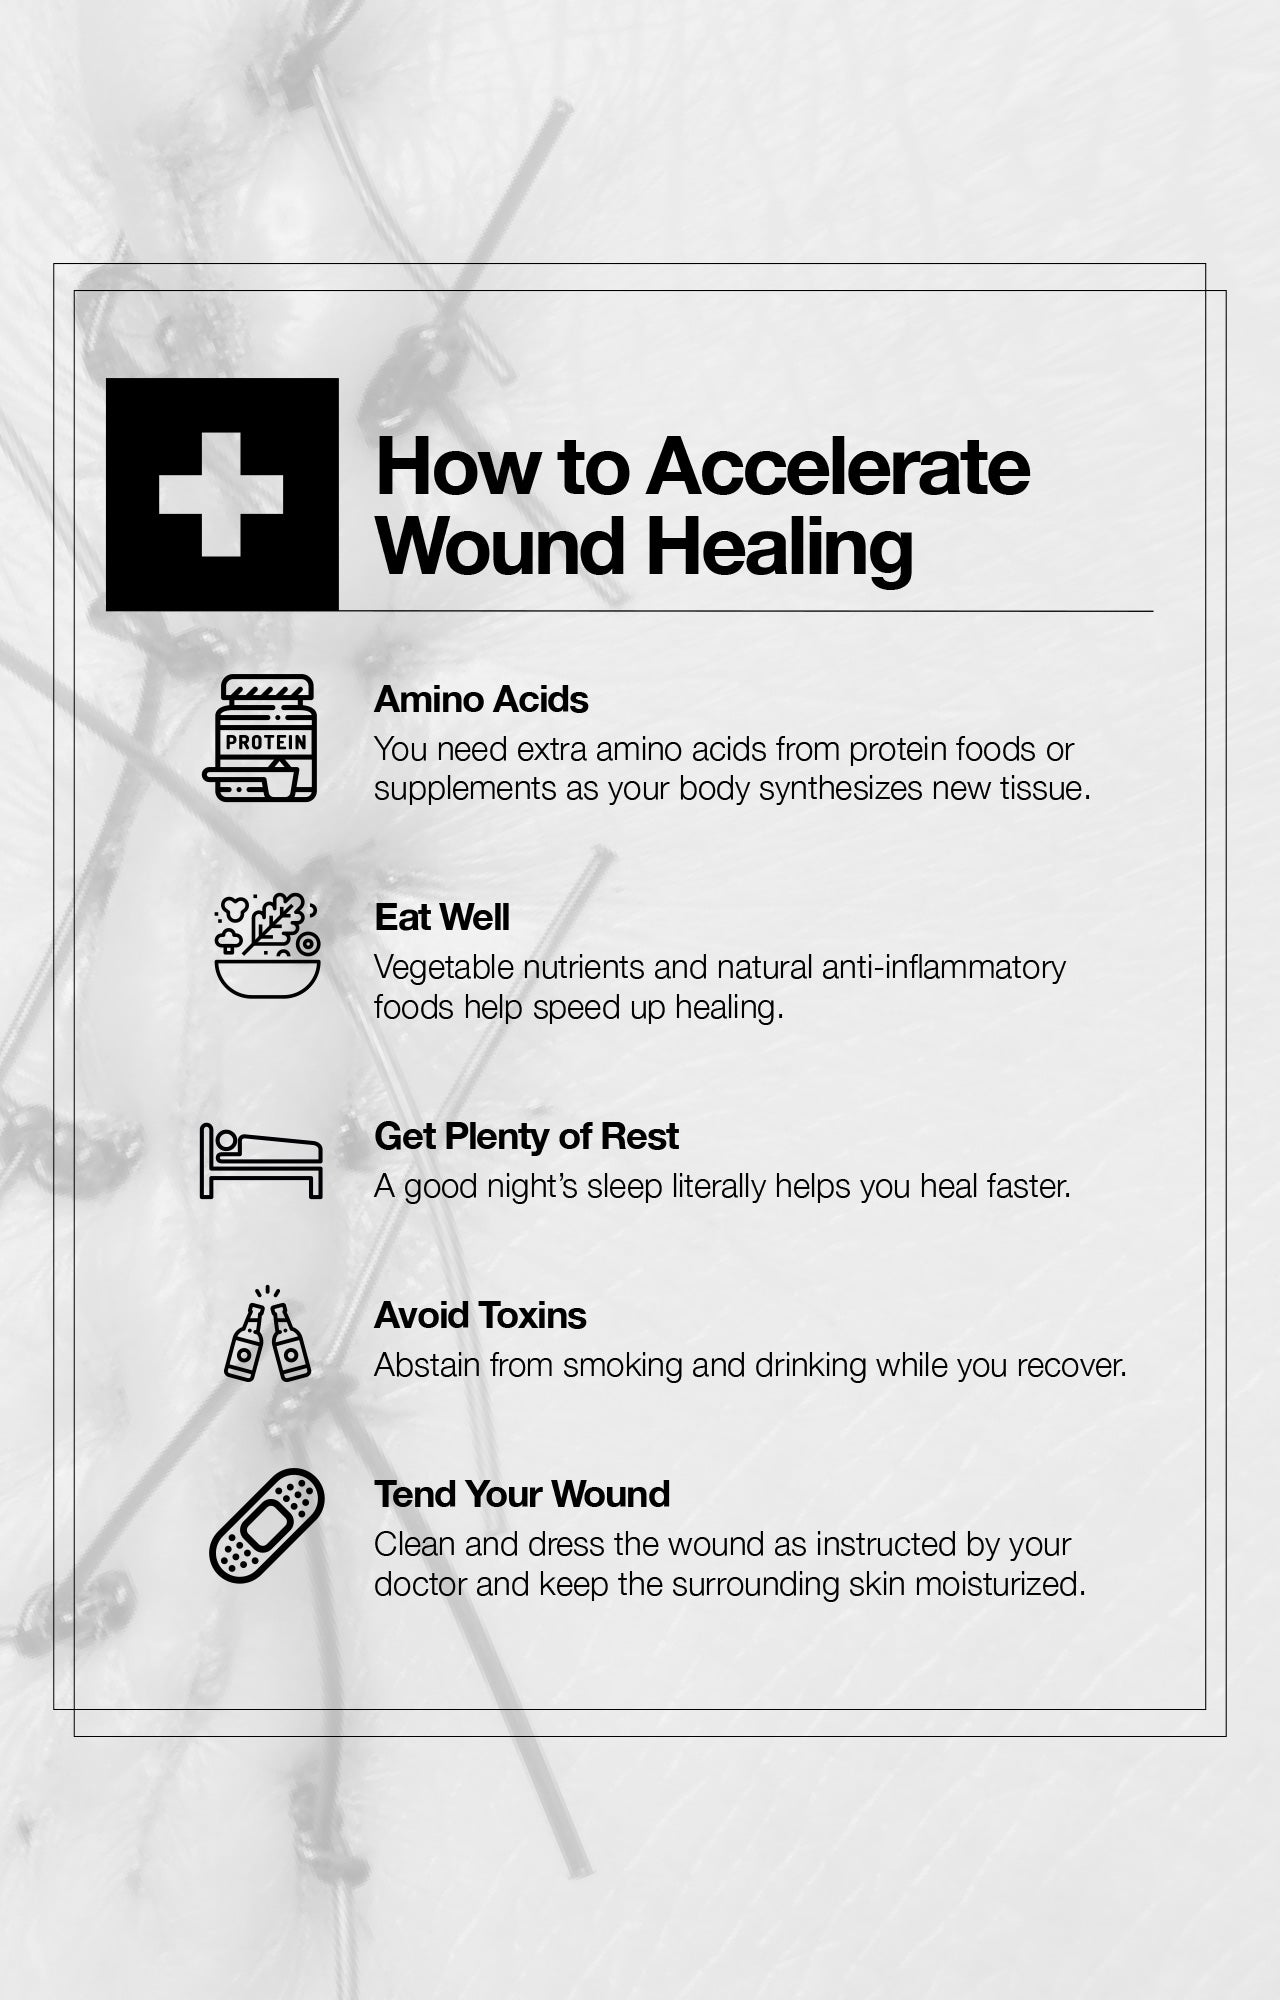 How to Accelerate Wound Healing